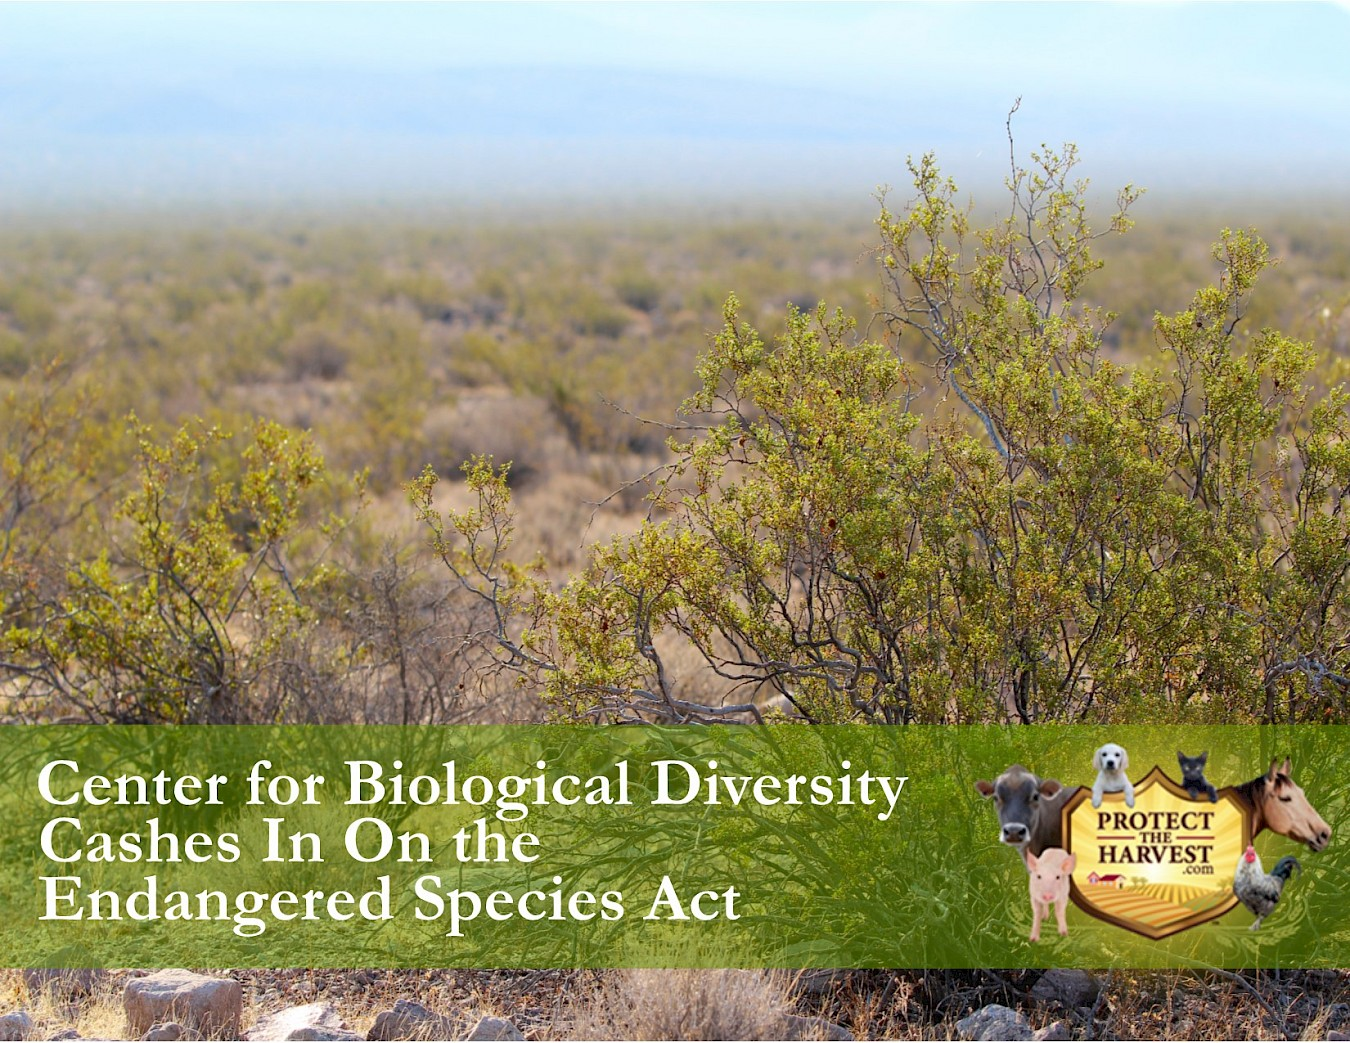 """Welfare Environmentalists"": The Center for Biological Diversity"